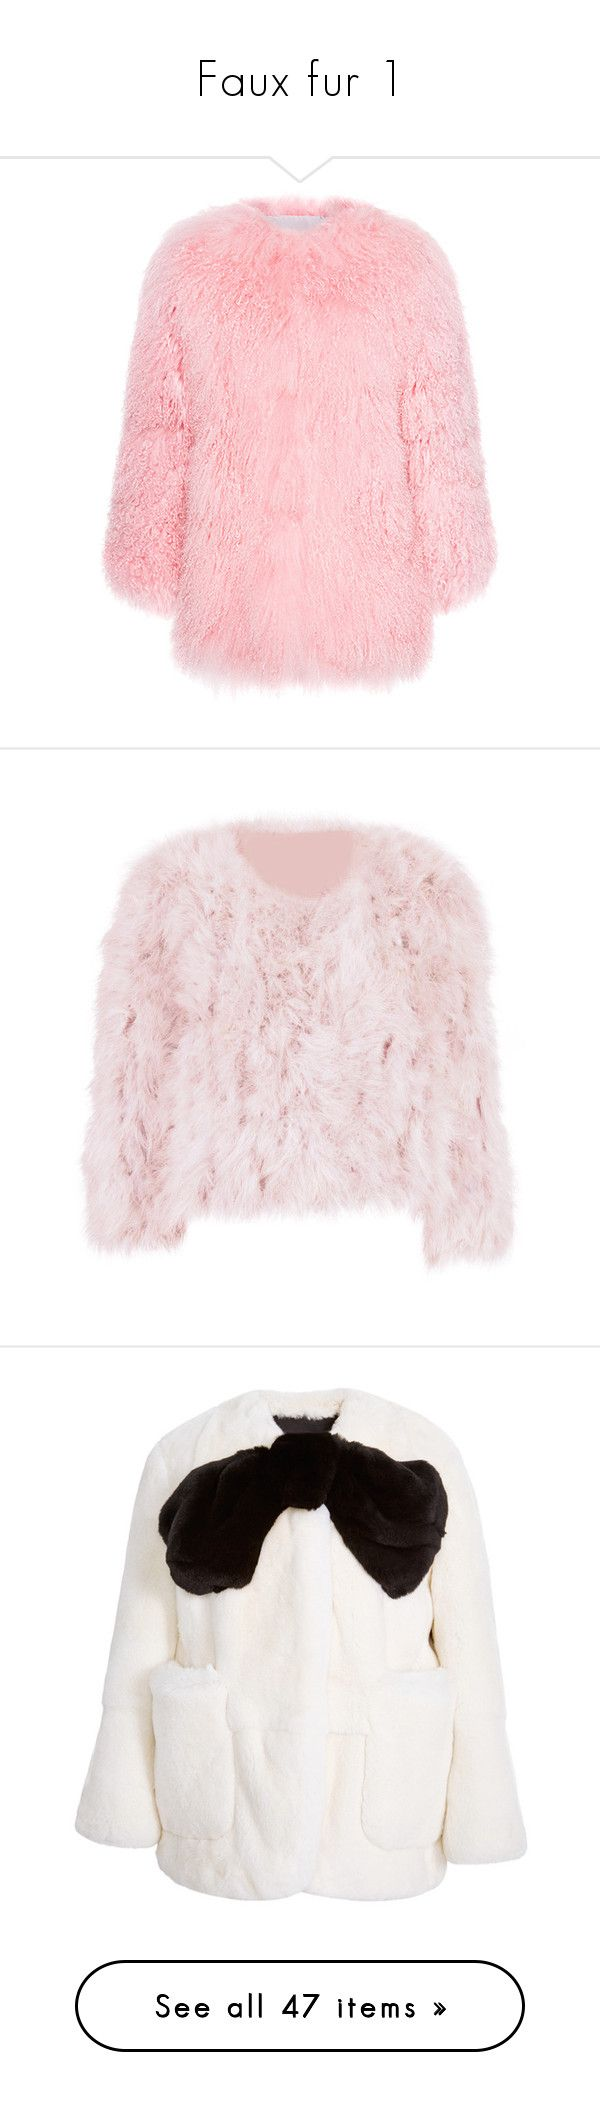 """""""Faux fur 1"""" by mgldemartino ❤ liked on Polyvore featuring outerwear, jackets, kurtki, pink, tops, pink feather jacket, feather jacket, pink jacket, bow jacket and rabbit jacket"""